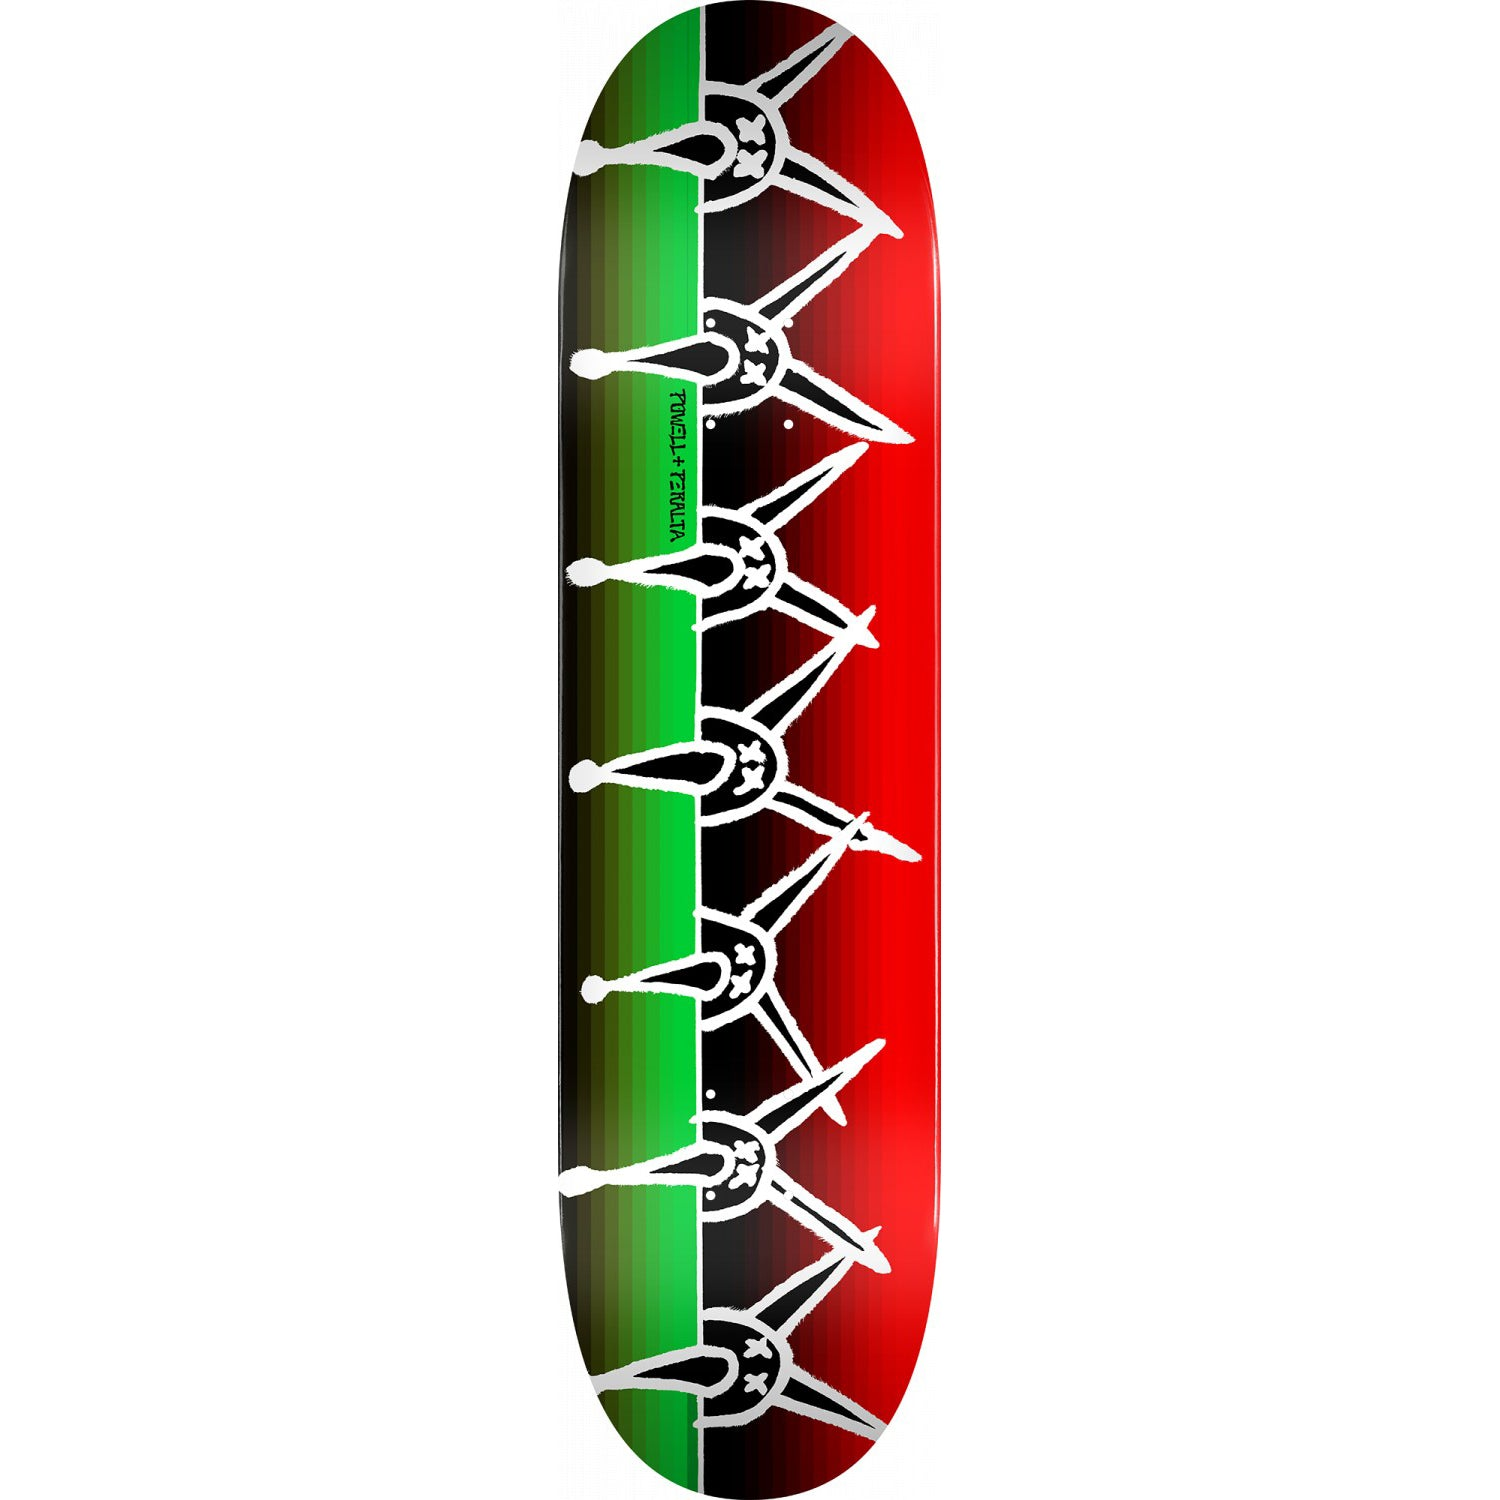 Vato Rat Band Green-Red K20 8.25